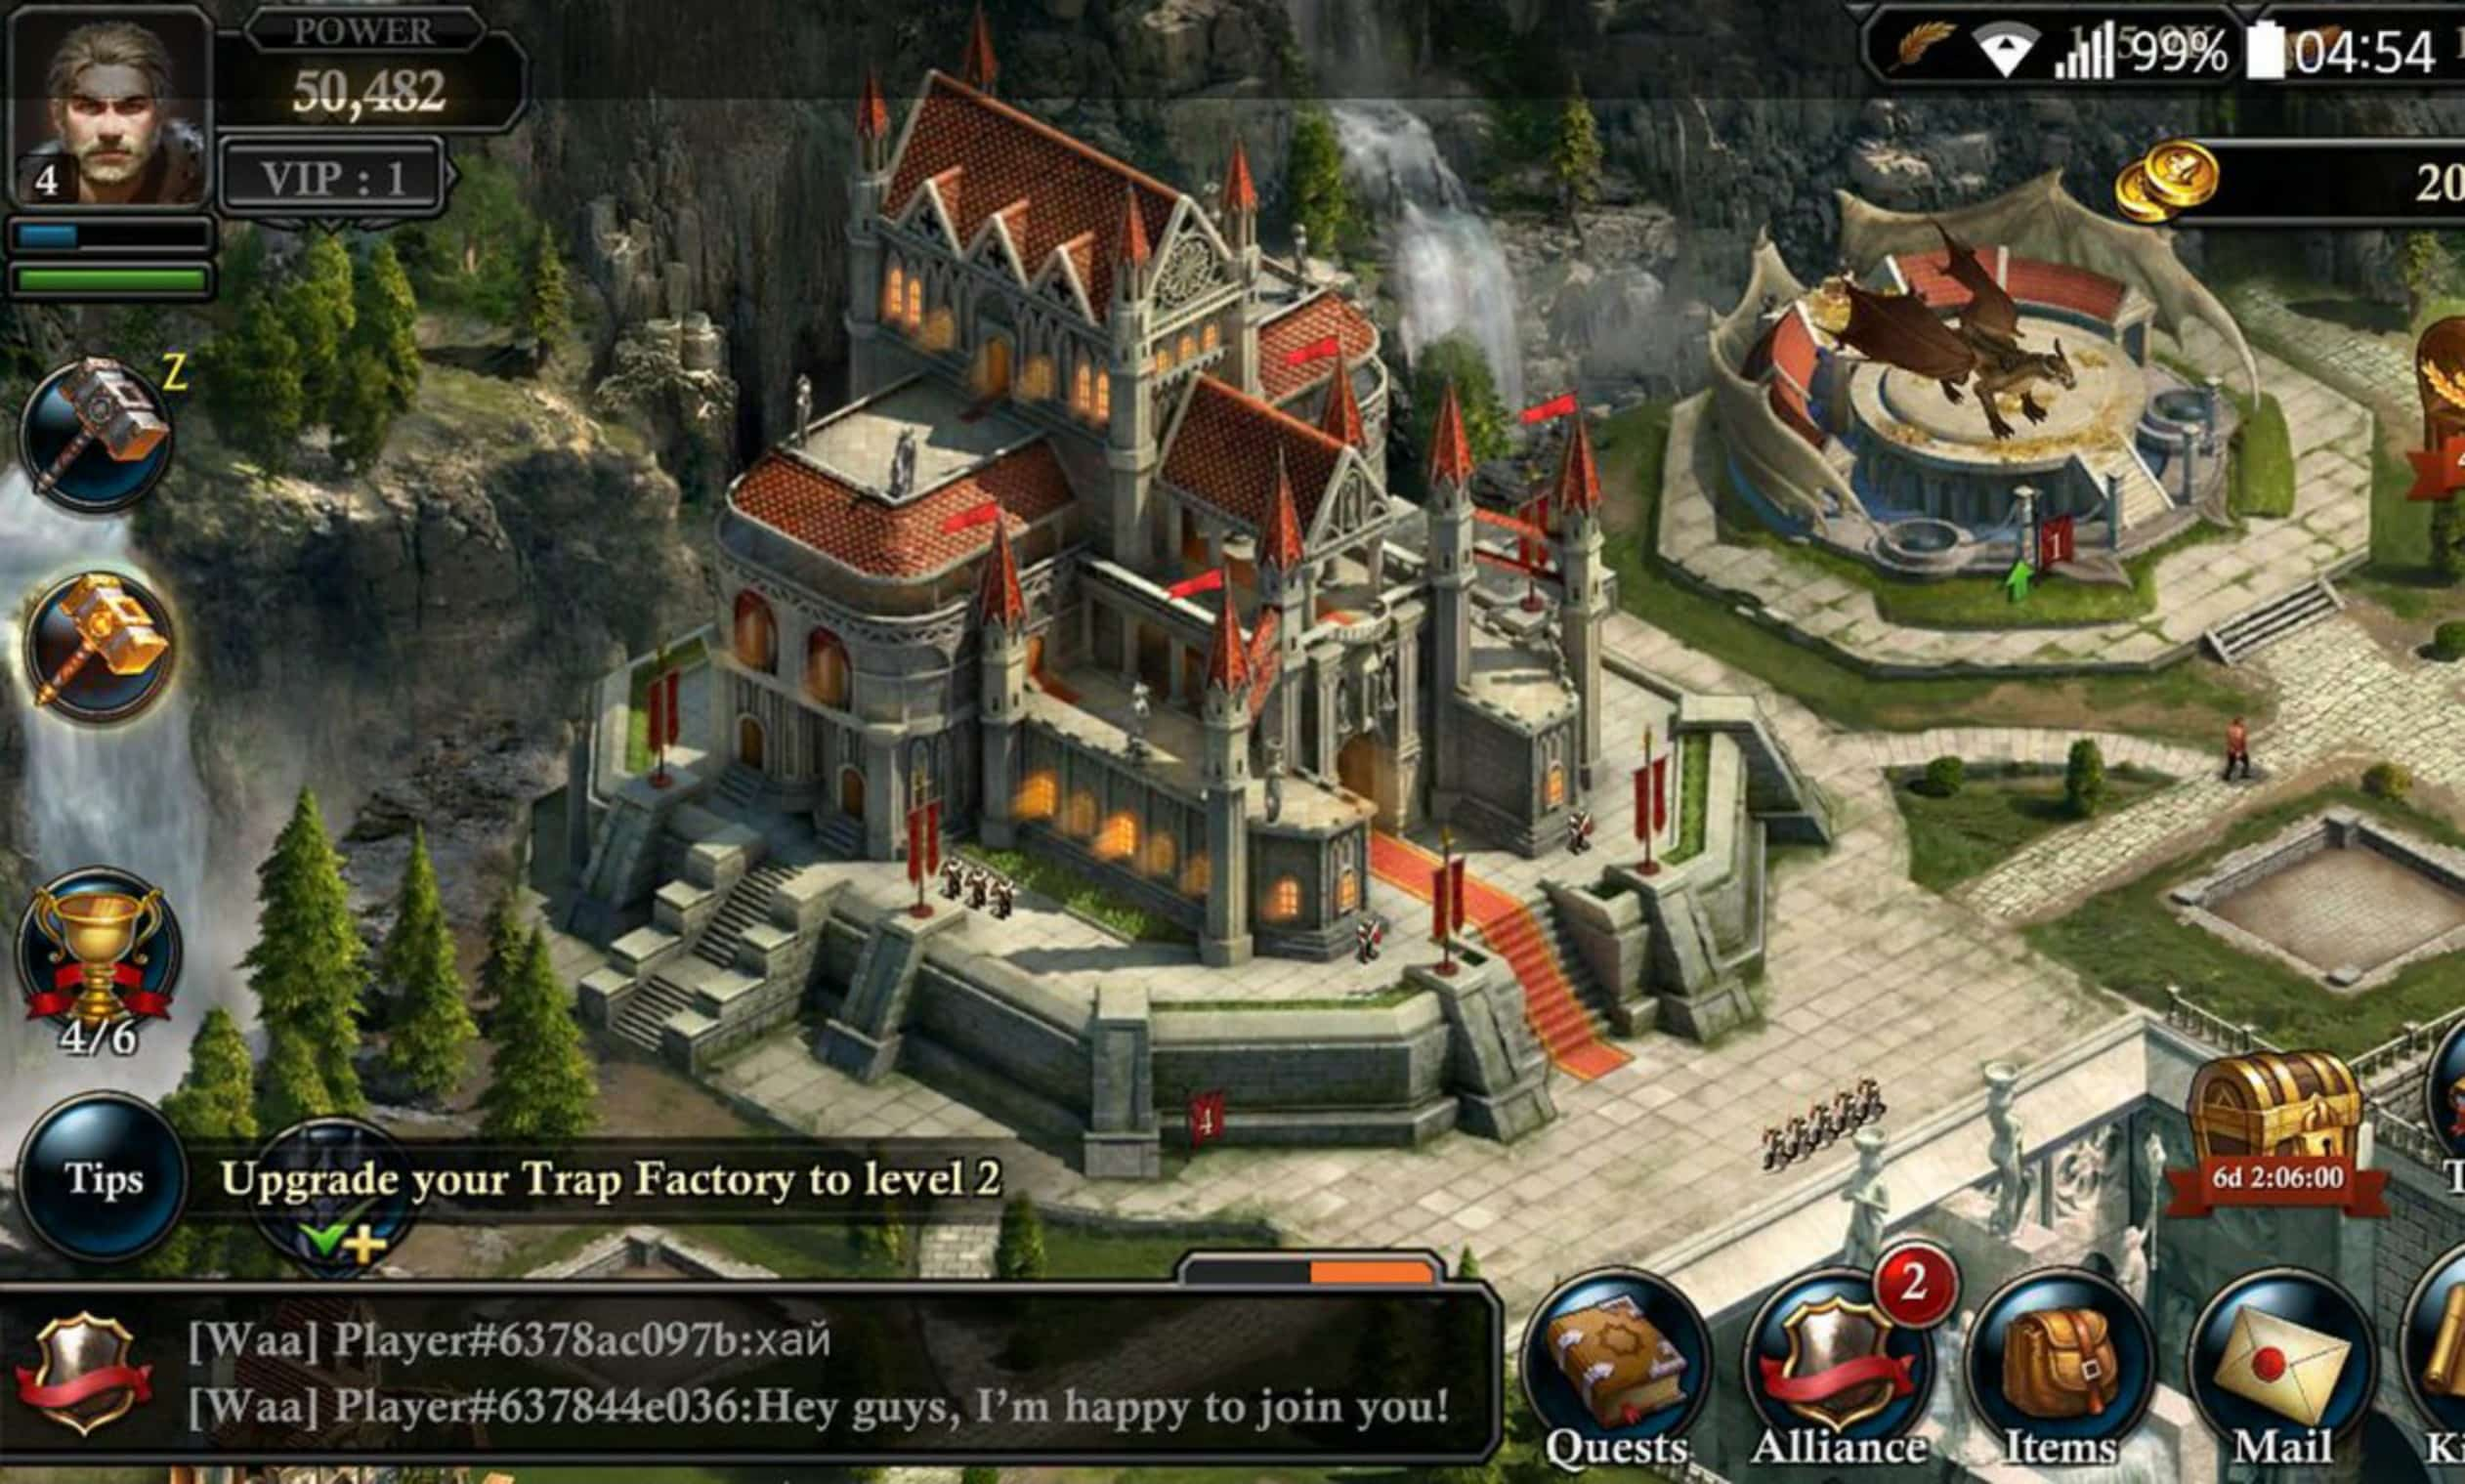 King-of-Avalon-Mod-Apk